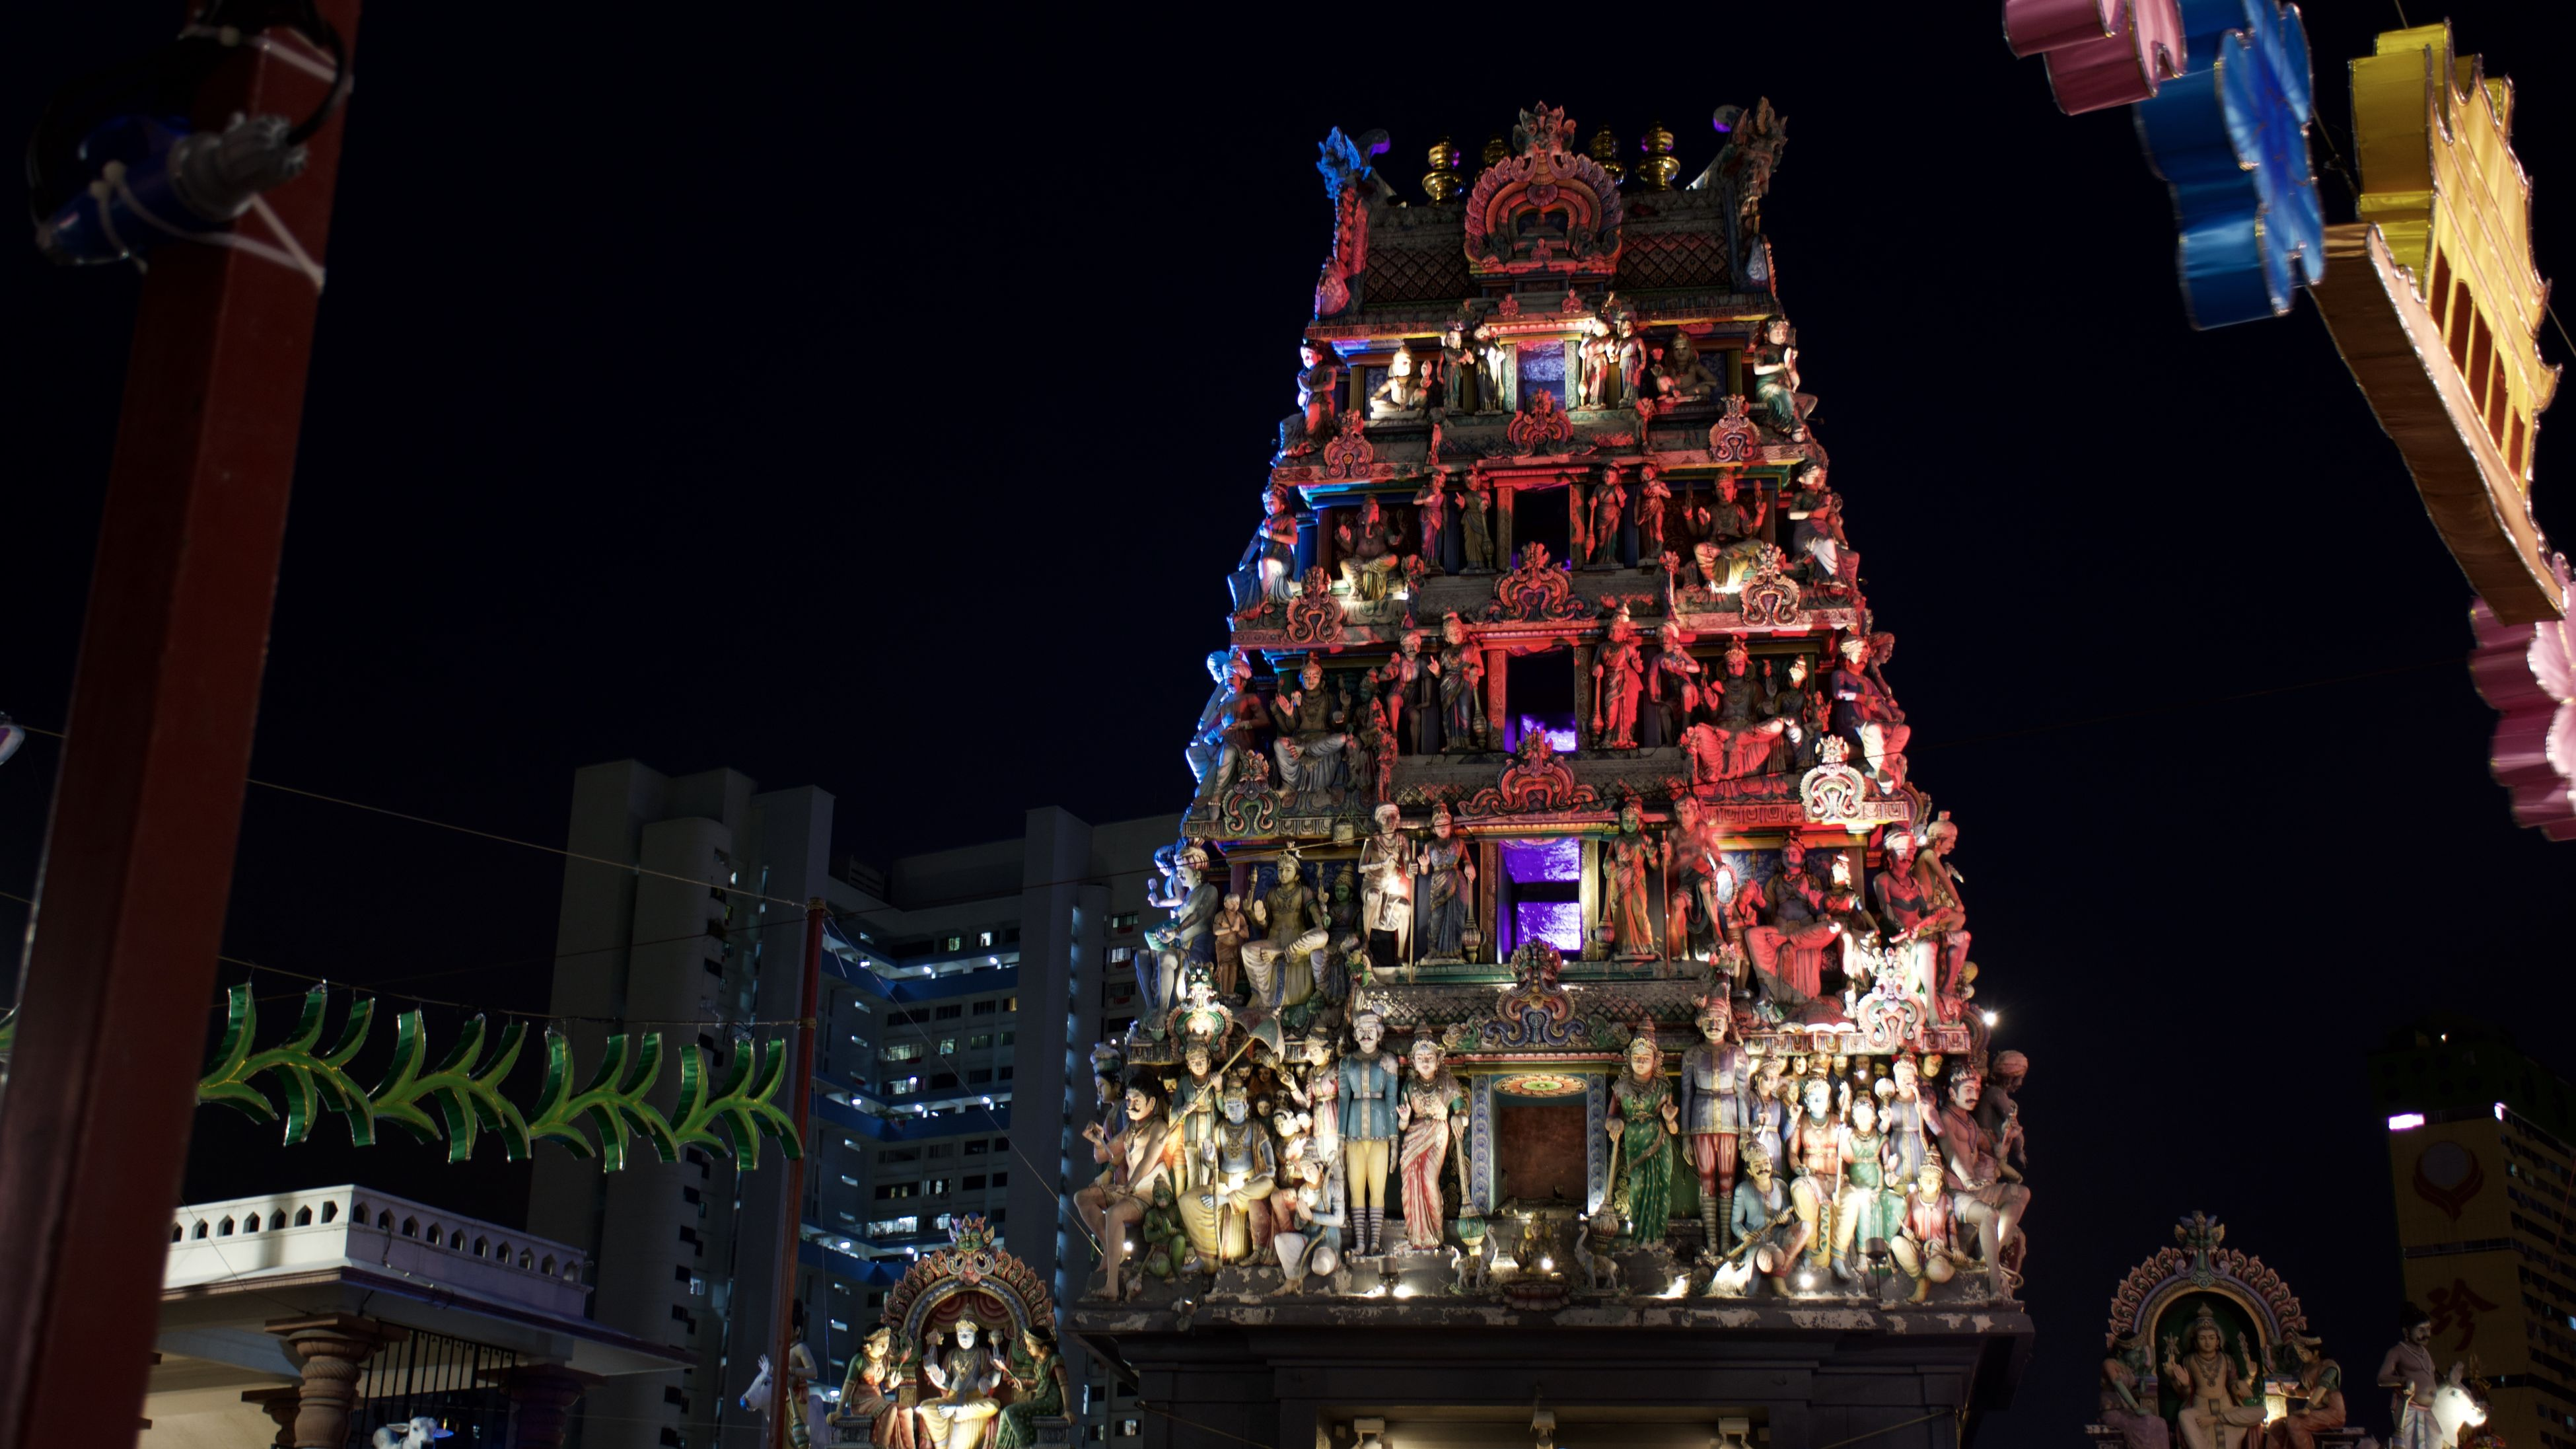 night, illuminated, building exterior, architecture, built structure, low angle view, city, tower, sky, travel destinations, christmas, skyscraper, outdoors, tall - high, city life, tourism, electric light, fairy lights, modern, nightlife